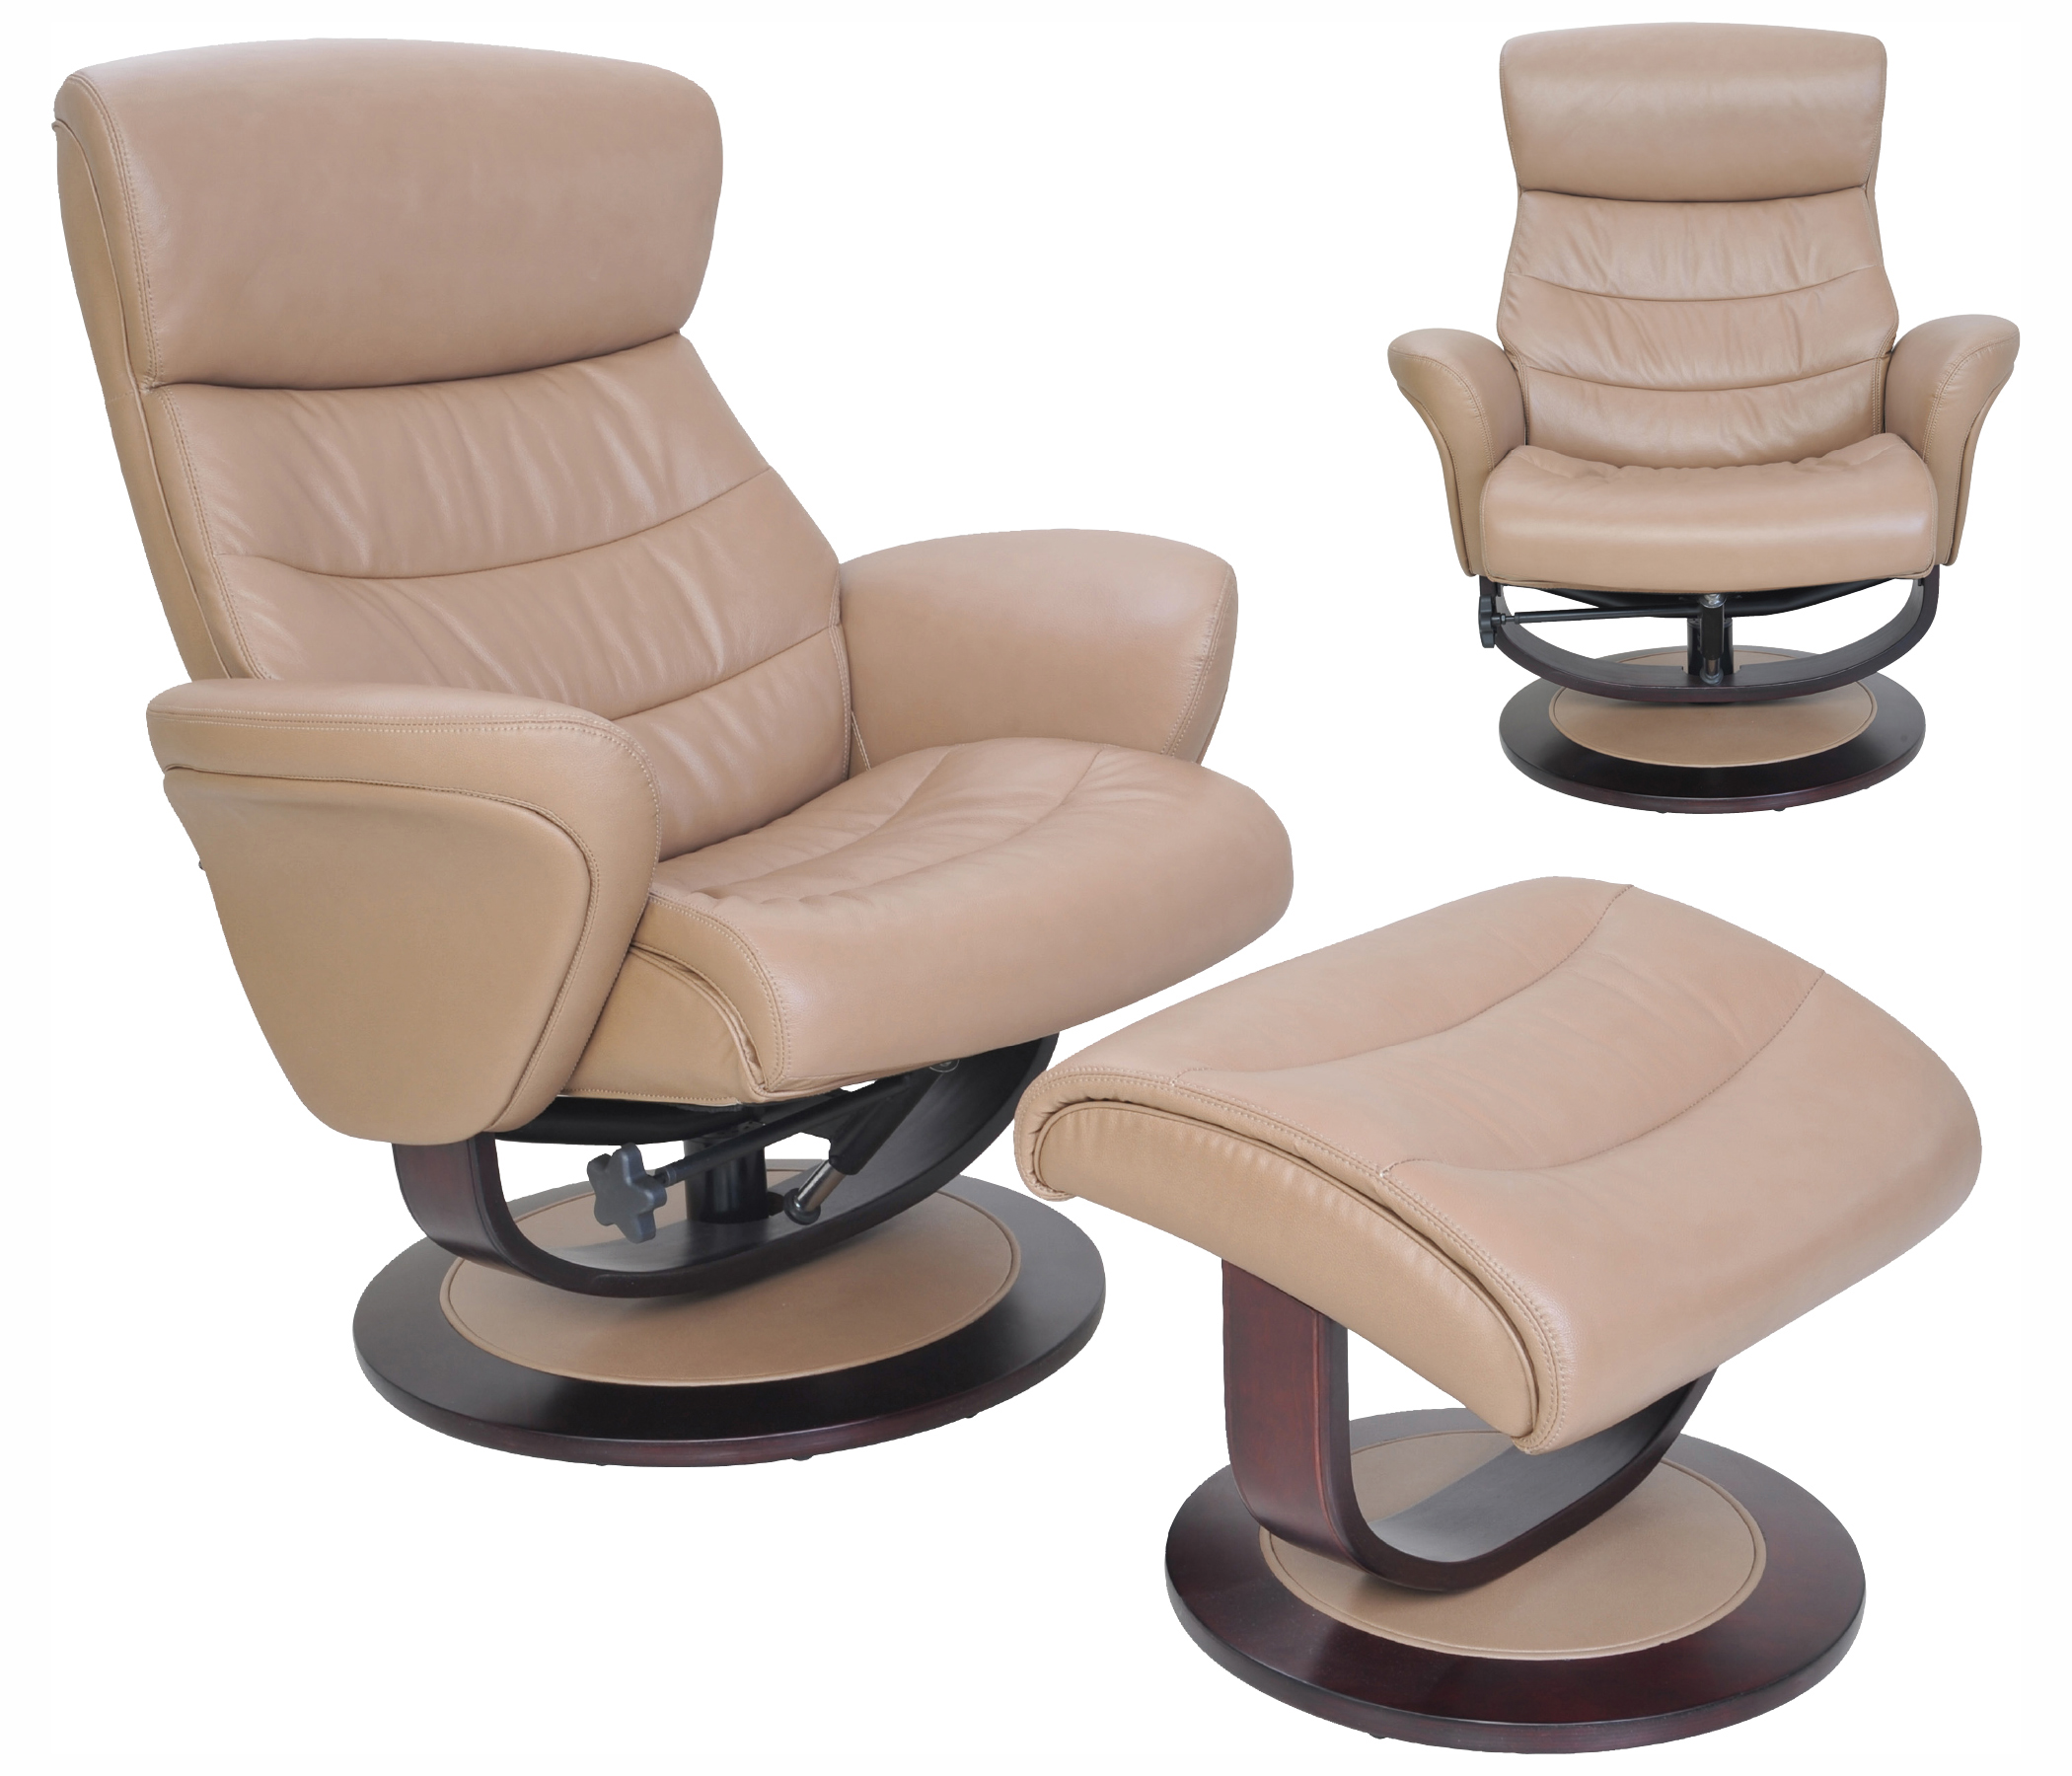 Barcalounger Tetra Leather Recliner Chair And Ottoman ...